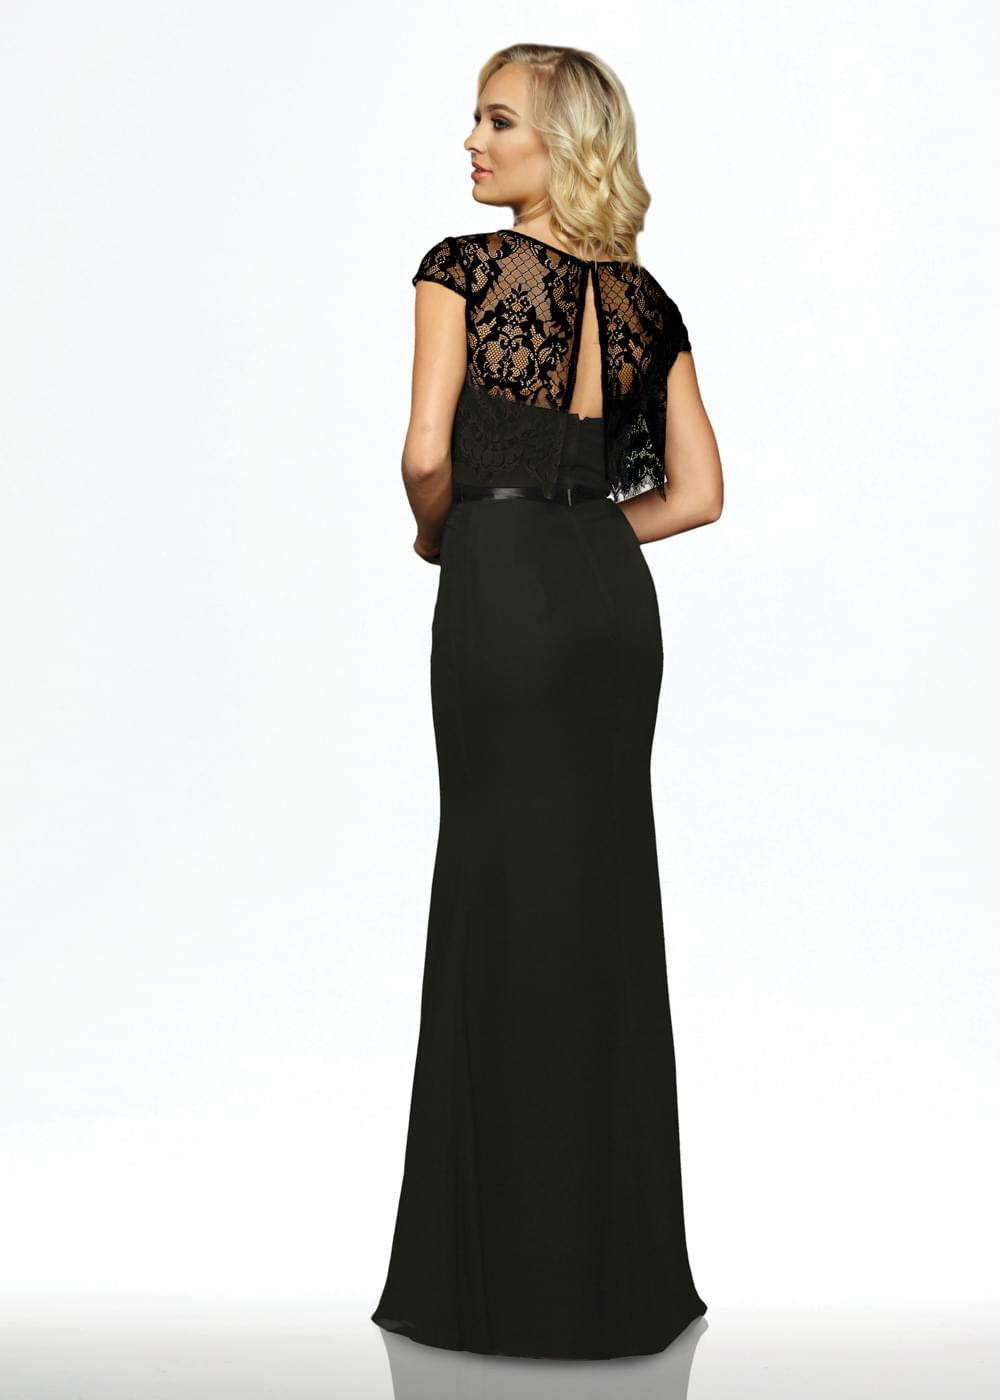 TH-80070 Black Dresses By Ashdon